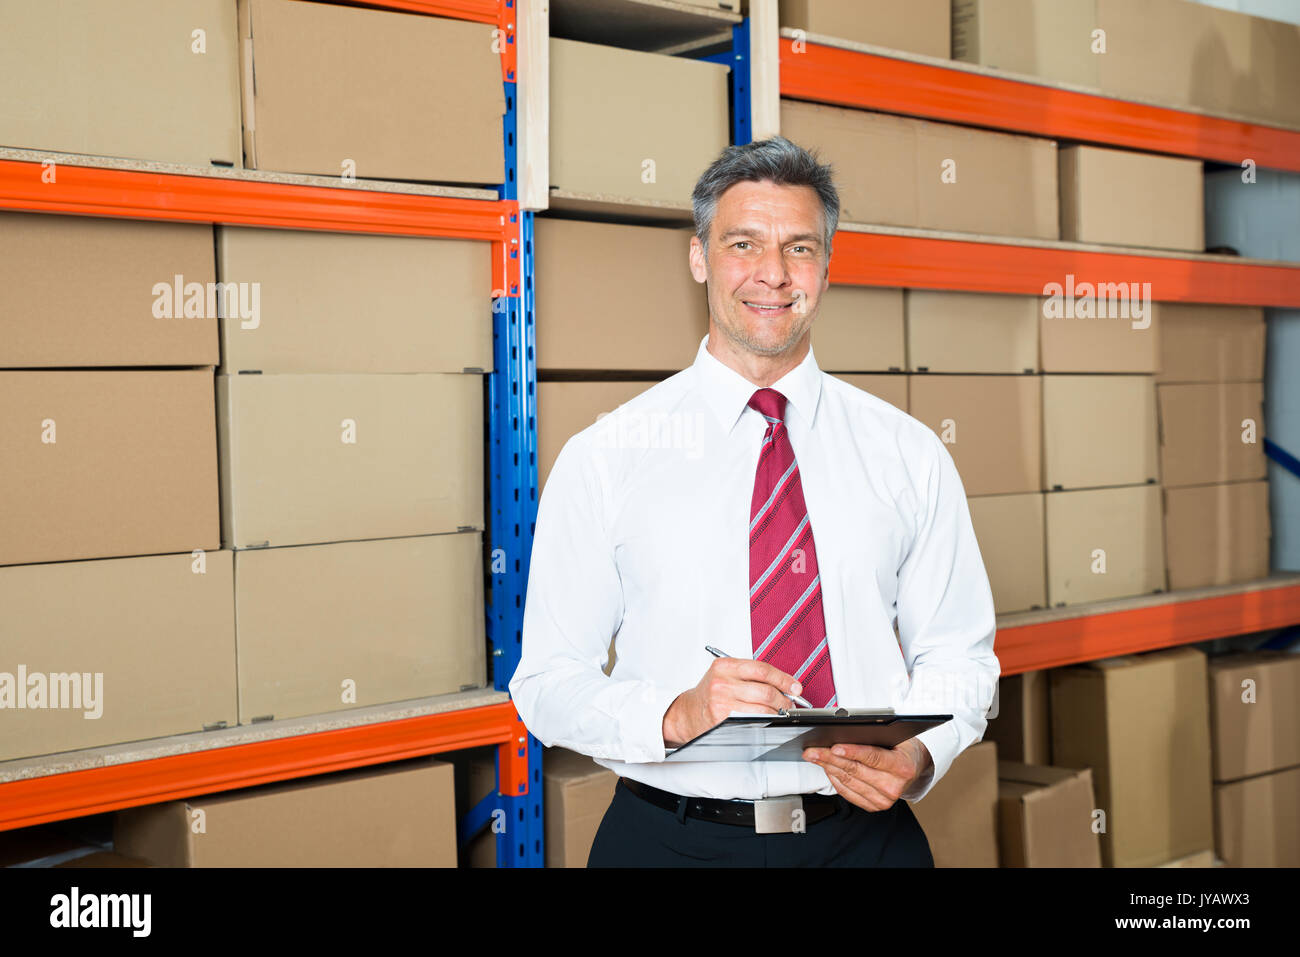 Happy Manager Writing On Clipboard In Distribution Warehouse Photo Stock